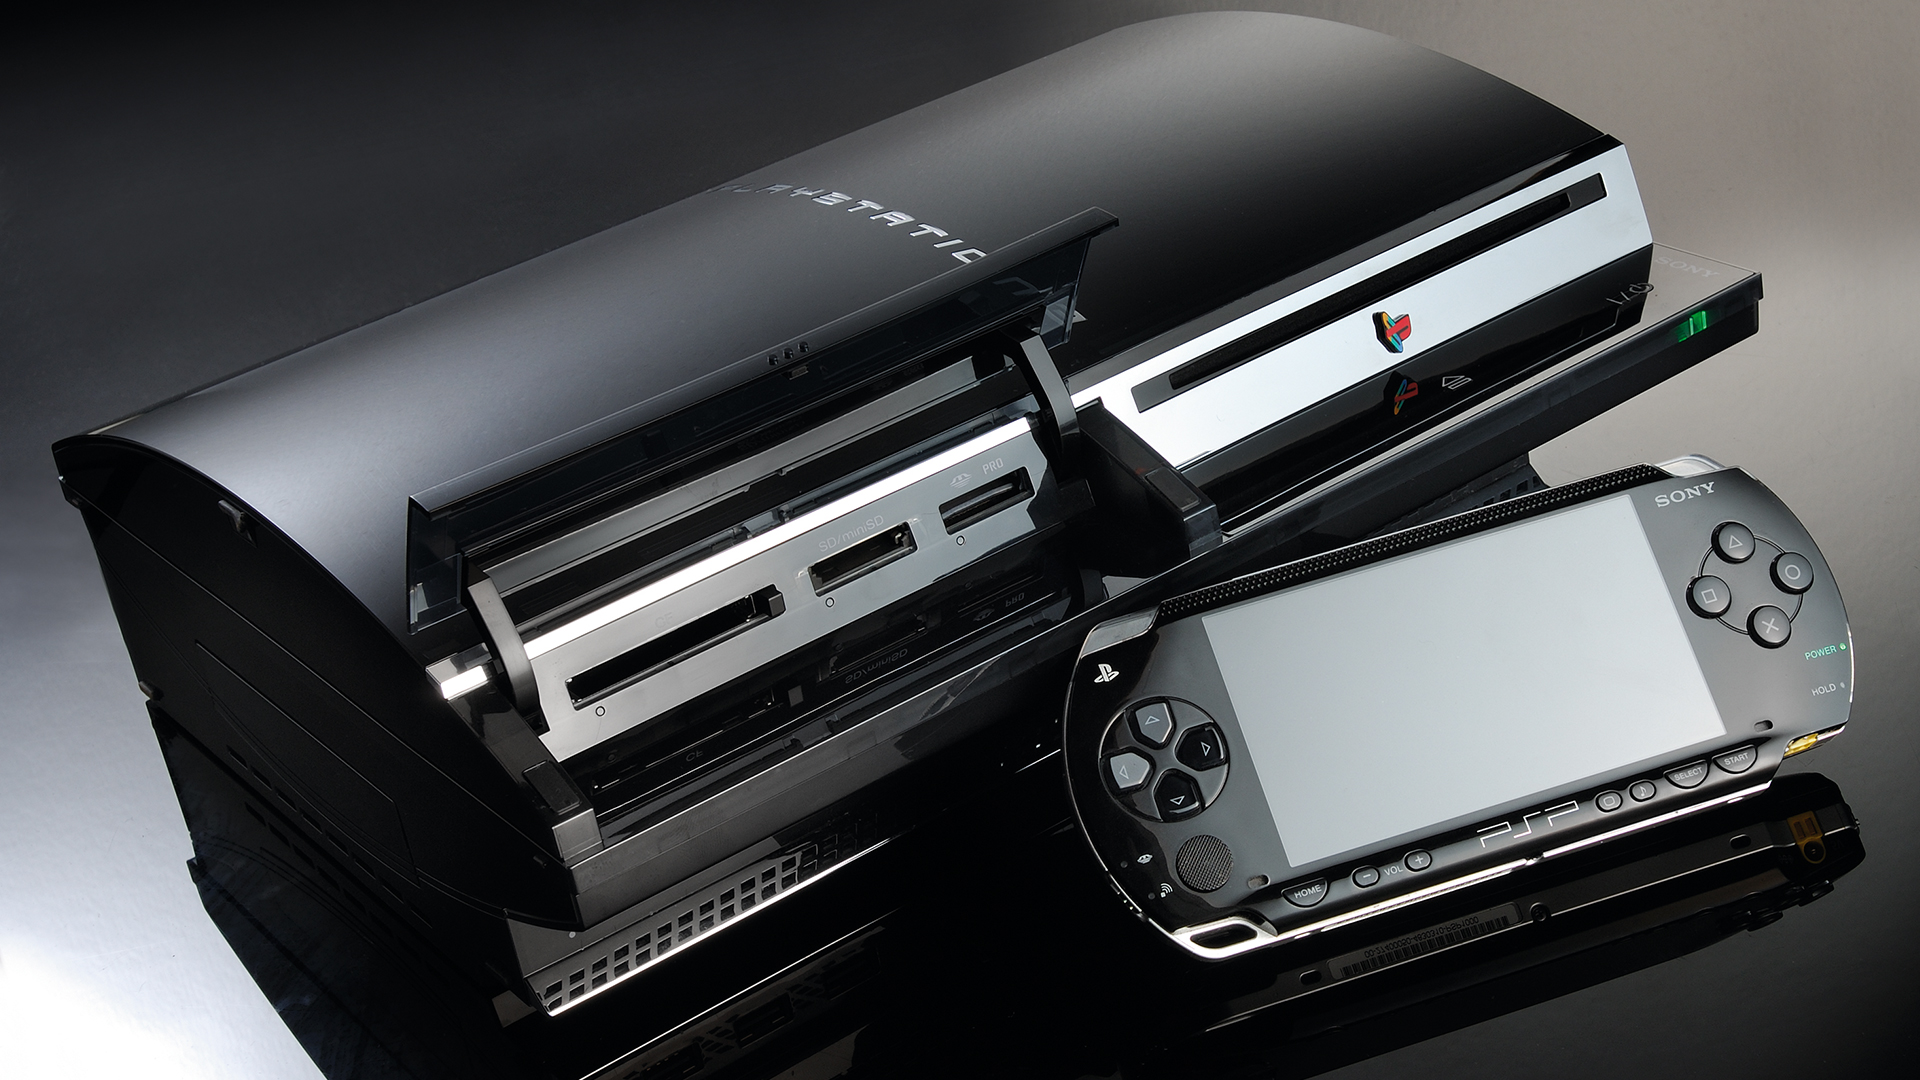 Ps3 Future Owns